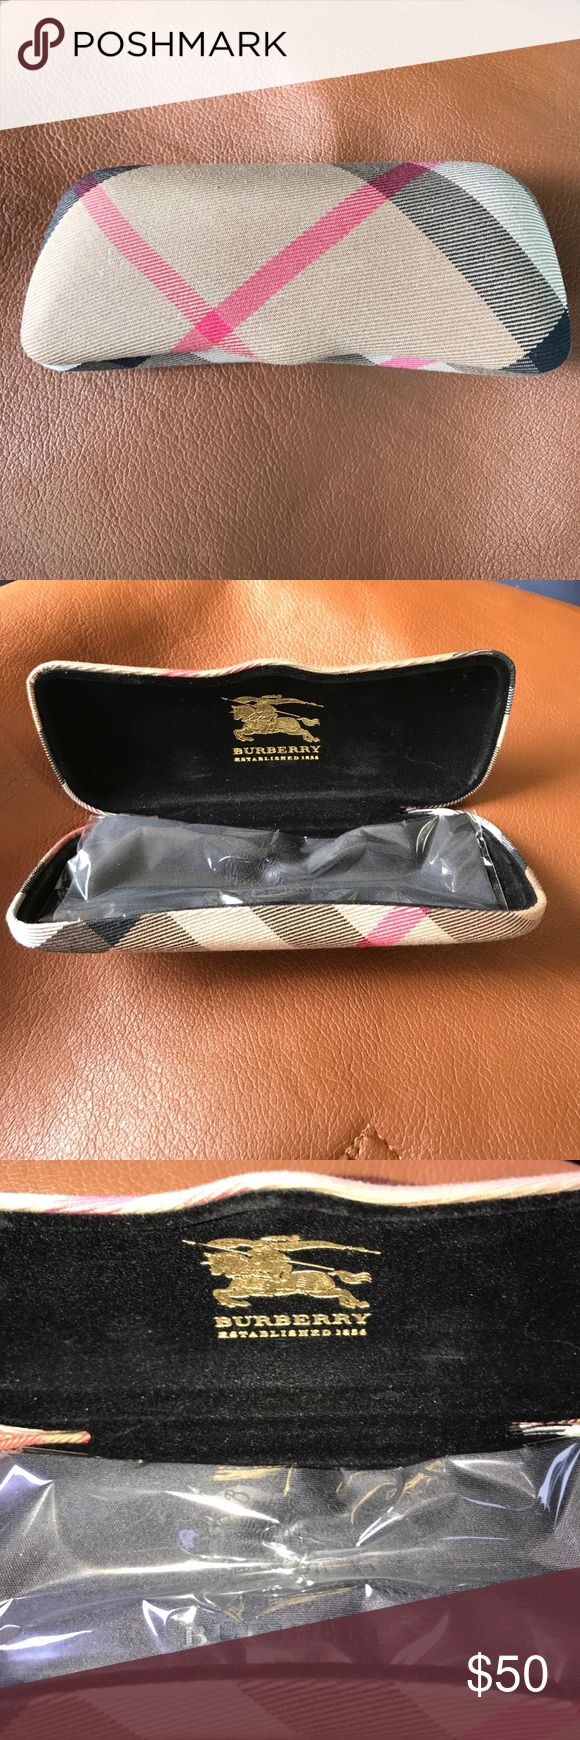 New Burberry Eyeglass Case with Cloth Beautiful traditional Burberry plaid Eyeglass case with black Burberry cleaning cloth. Burberry Accessories Glasses